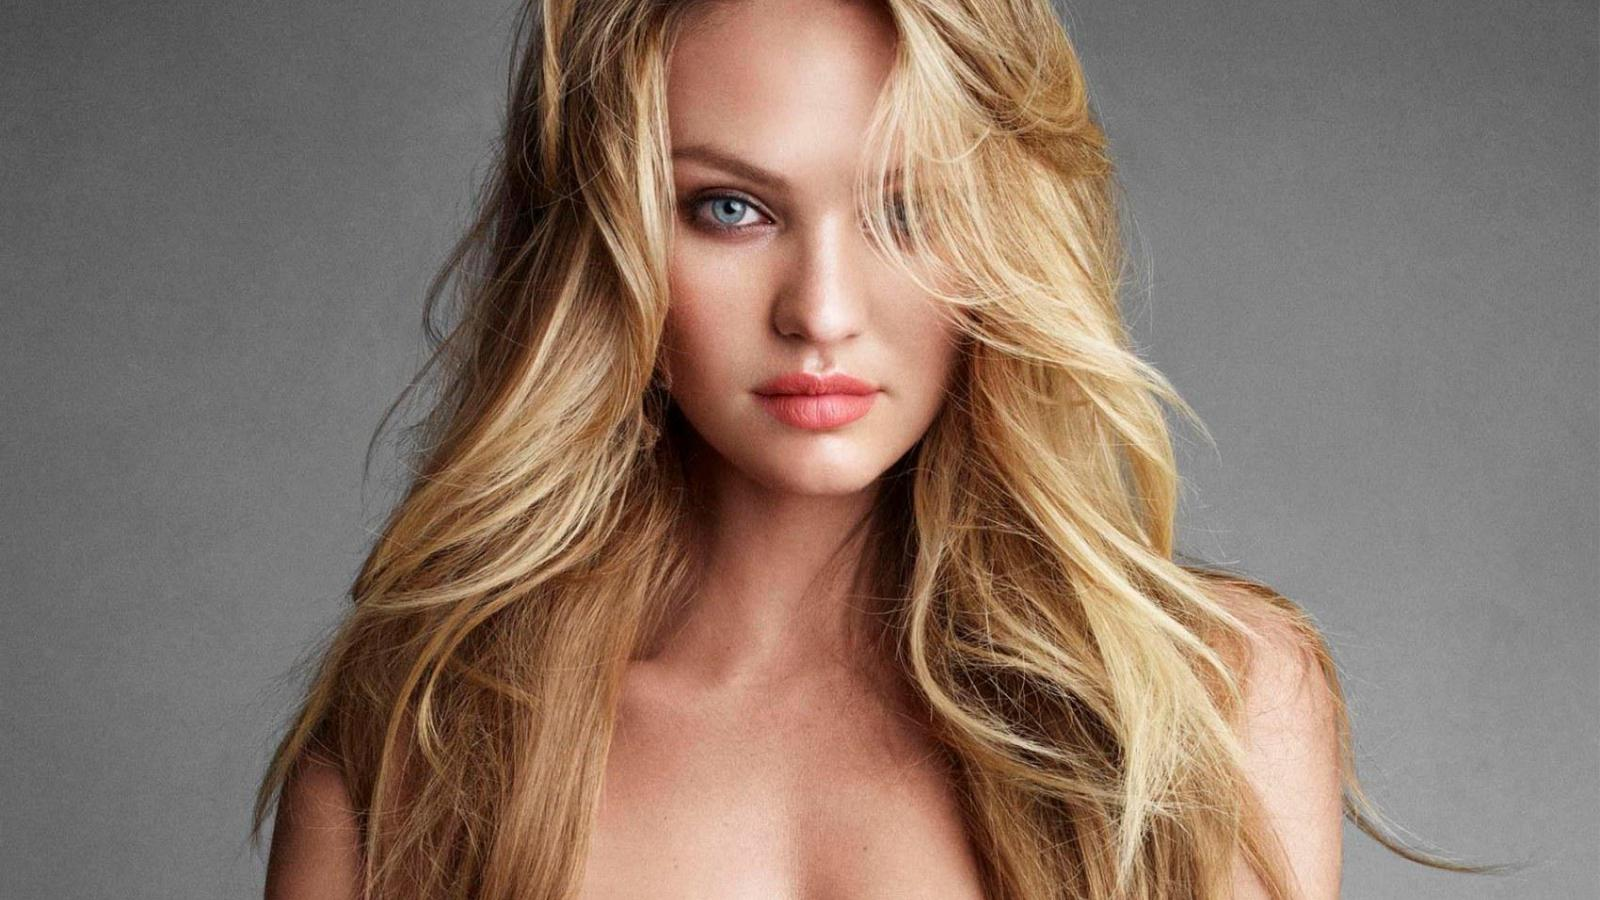 Fotos Candice Swanepoel nudes (97 foto and video), Tits, Paparazzi, Selfie, braless 2020